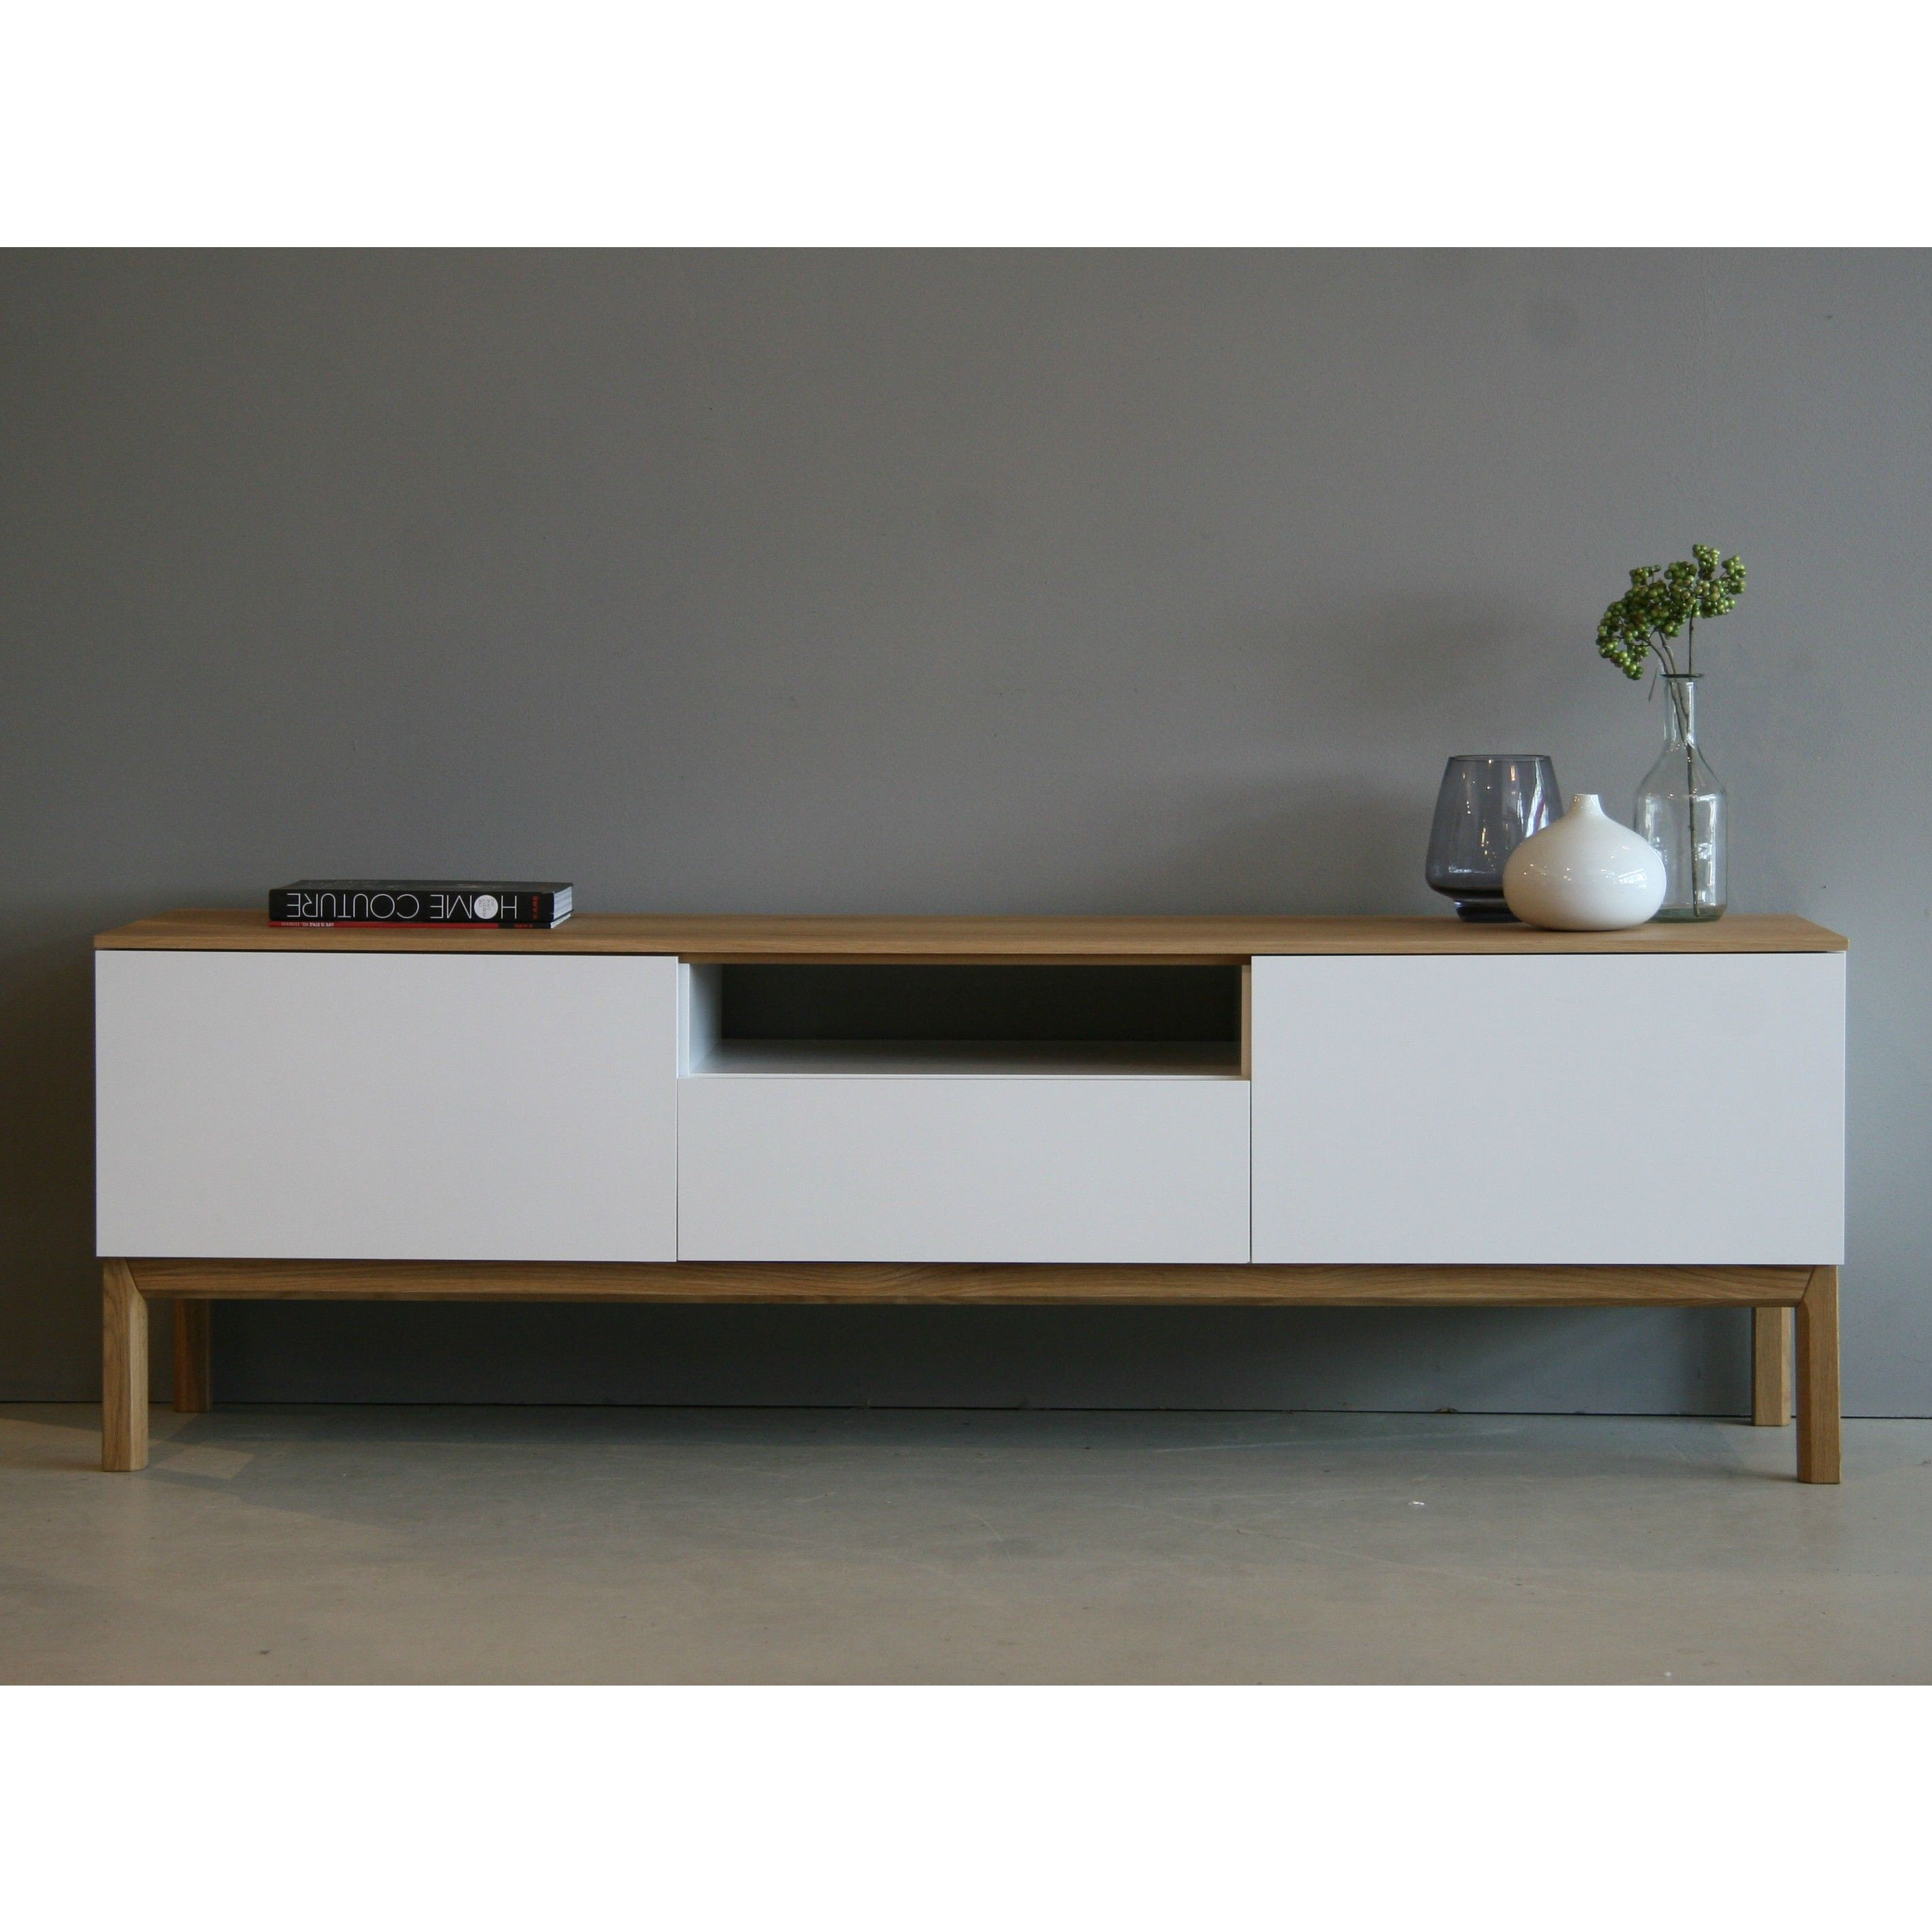 Vintage Retro Tv Dressoir Deens Design Design Meubelen En De  # Meuble Tv Zaiken